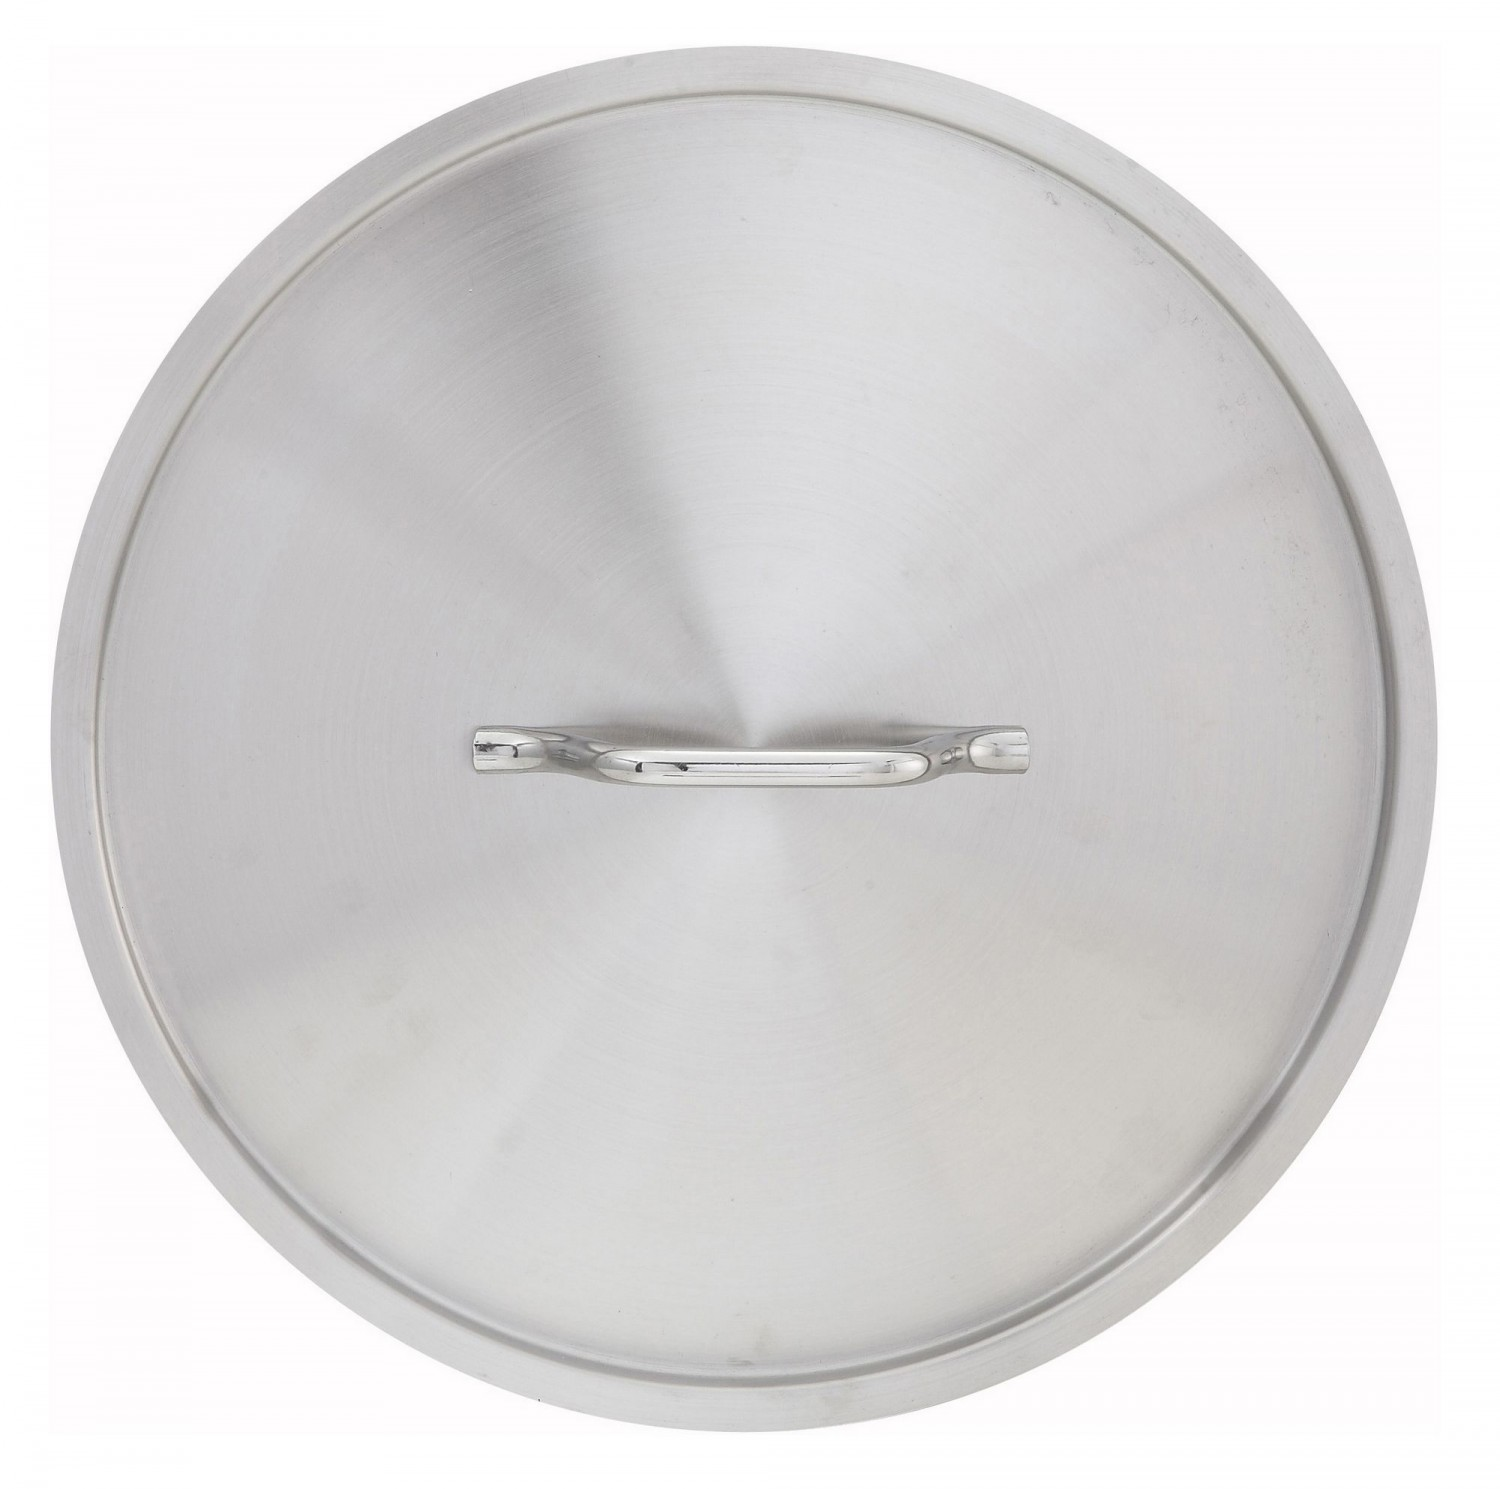 Winco SSTC-2 Stainless Steel Cover for SSSP-2